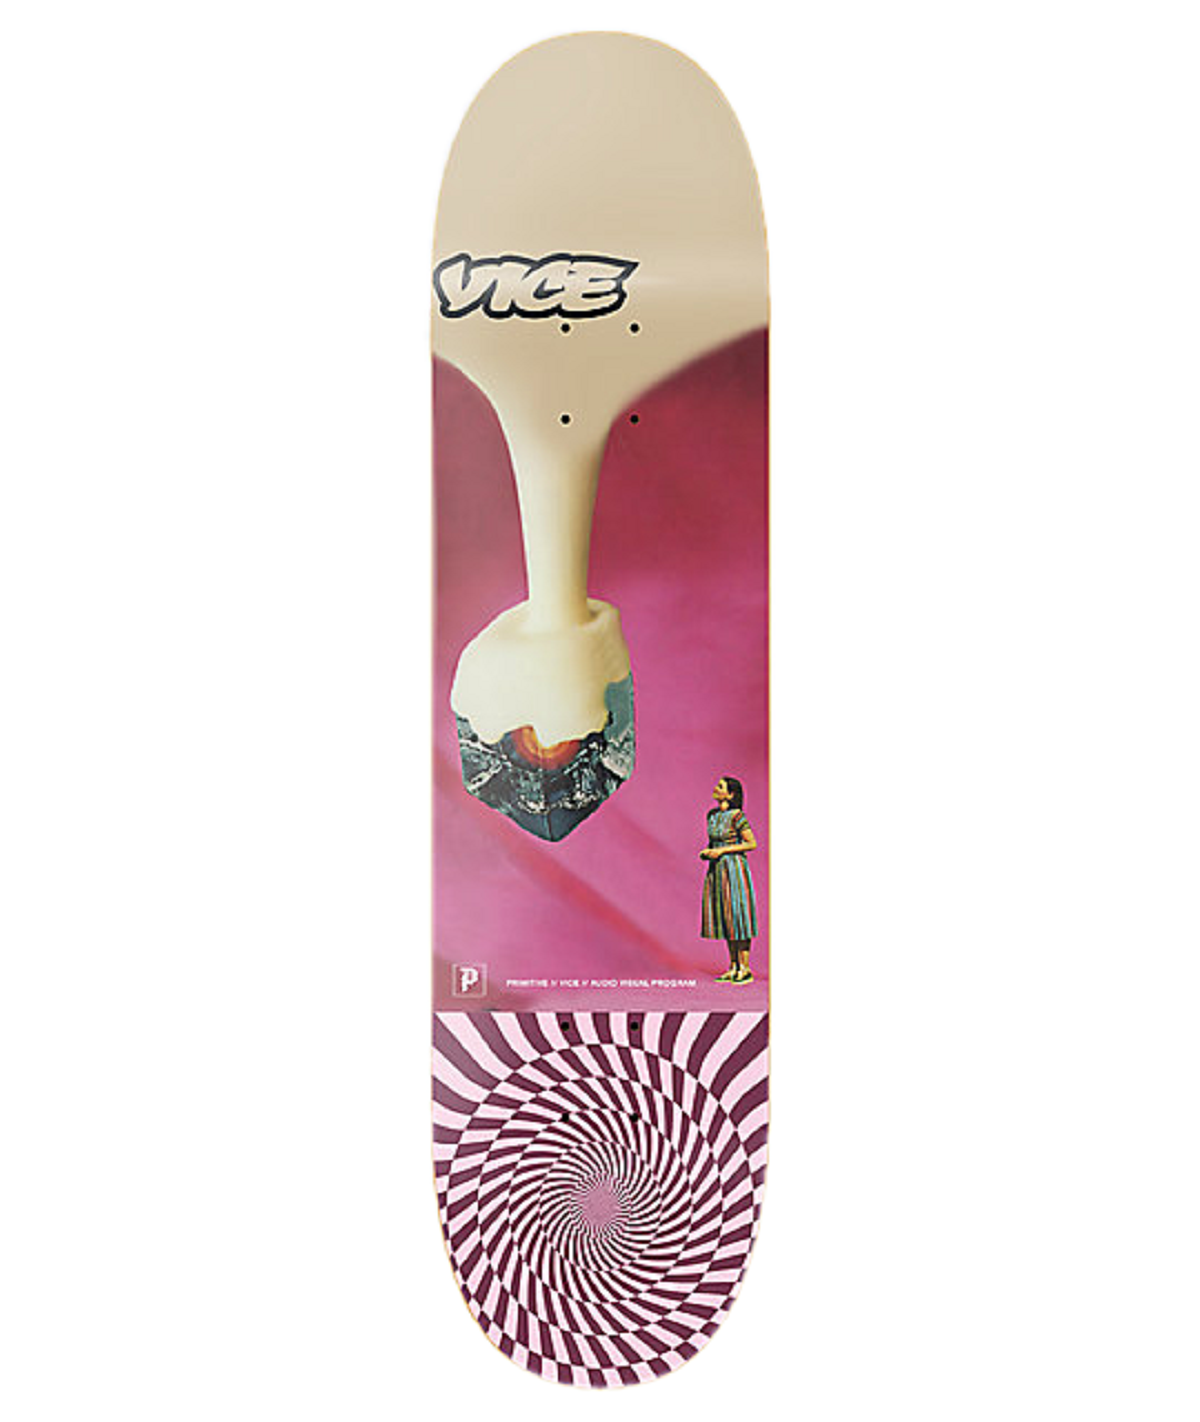 Primitive x Vice Mag 25 Year Anniversary Skateboard Deck 8.0